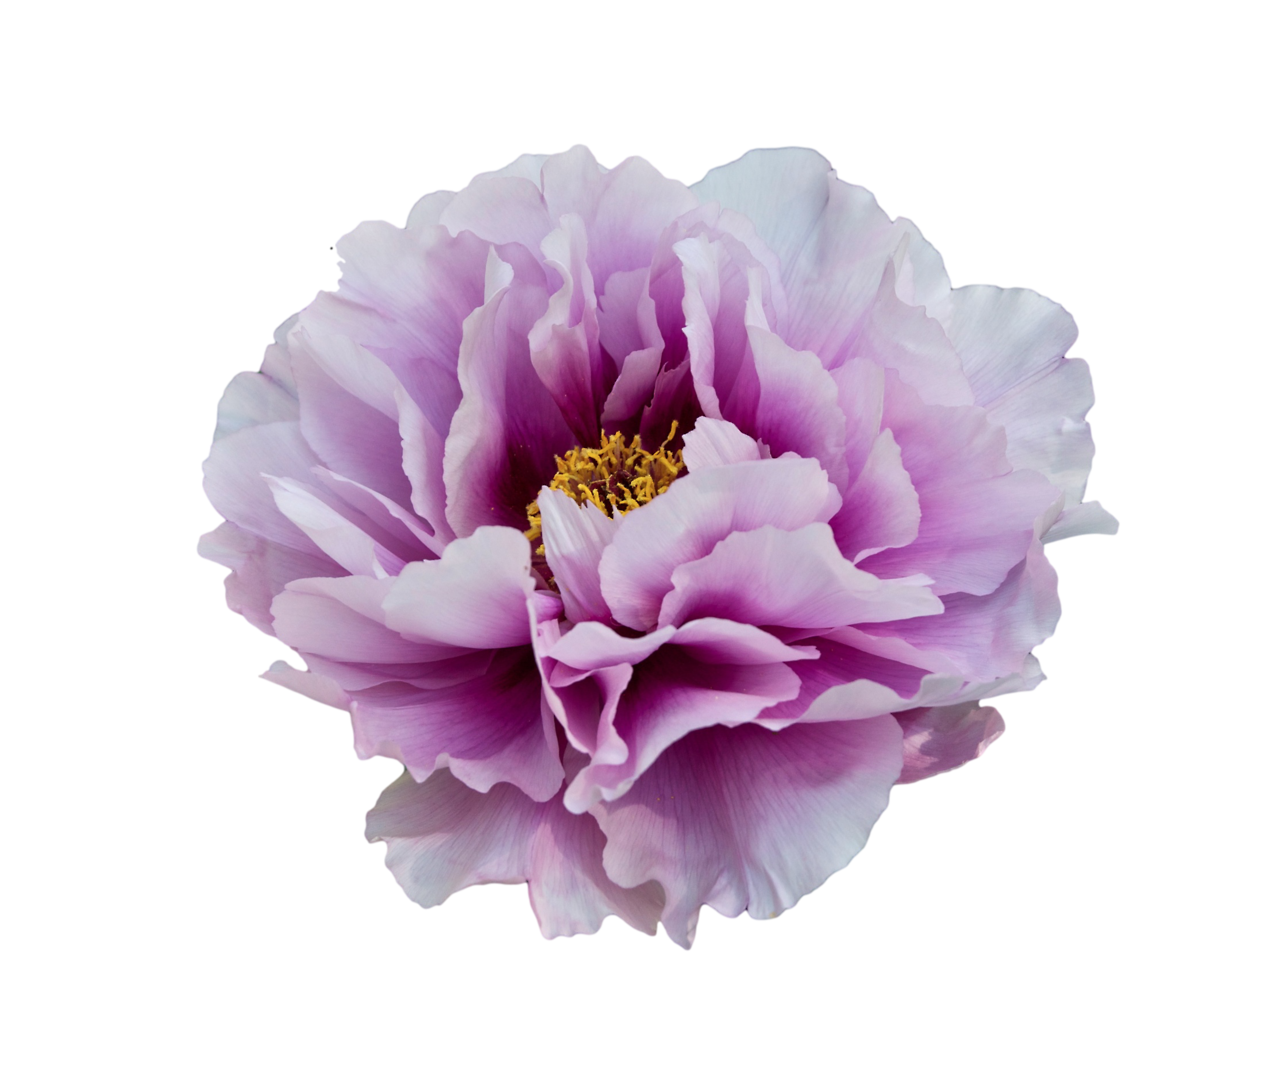 Transparent Flowers White And Purple Peony X Transparent Flowers Purple Flowers Botanical Flowers